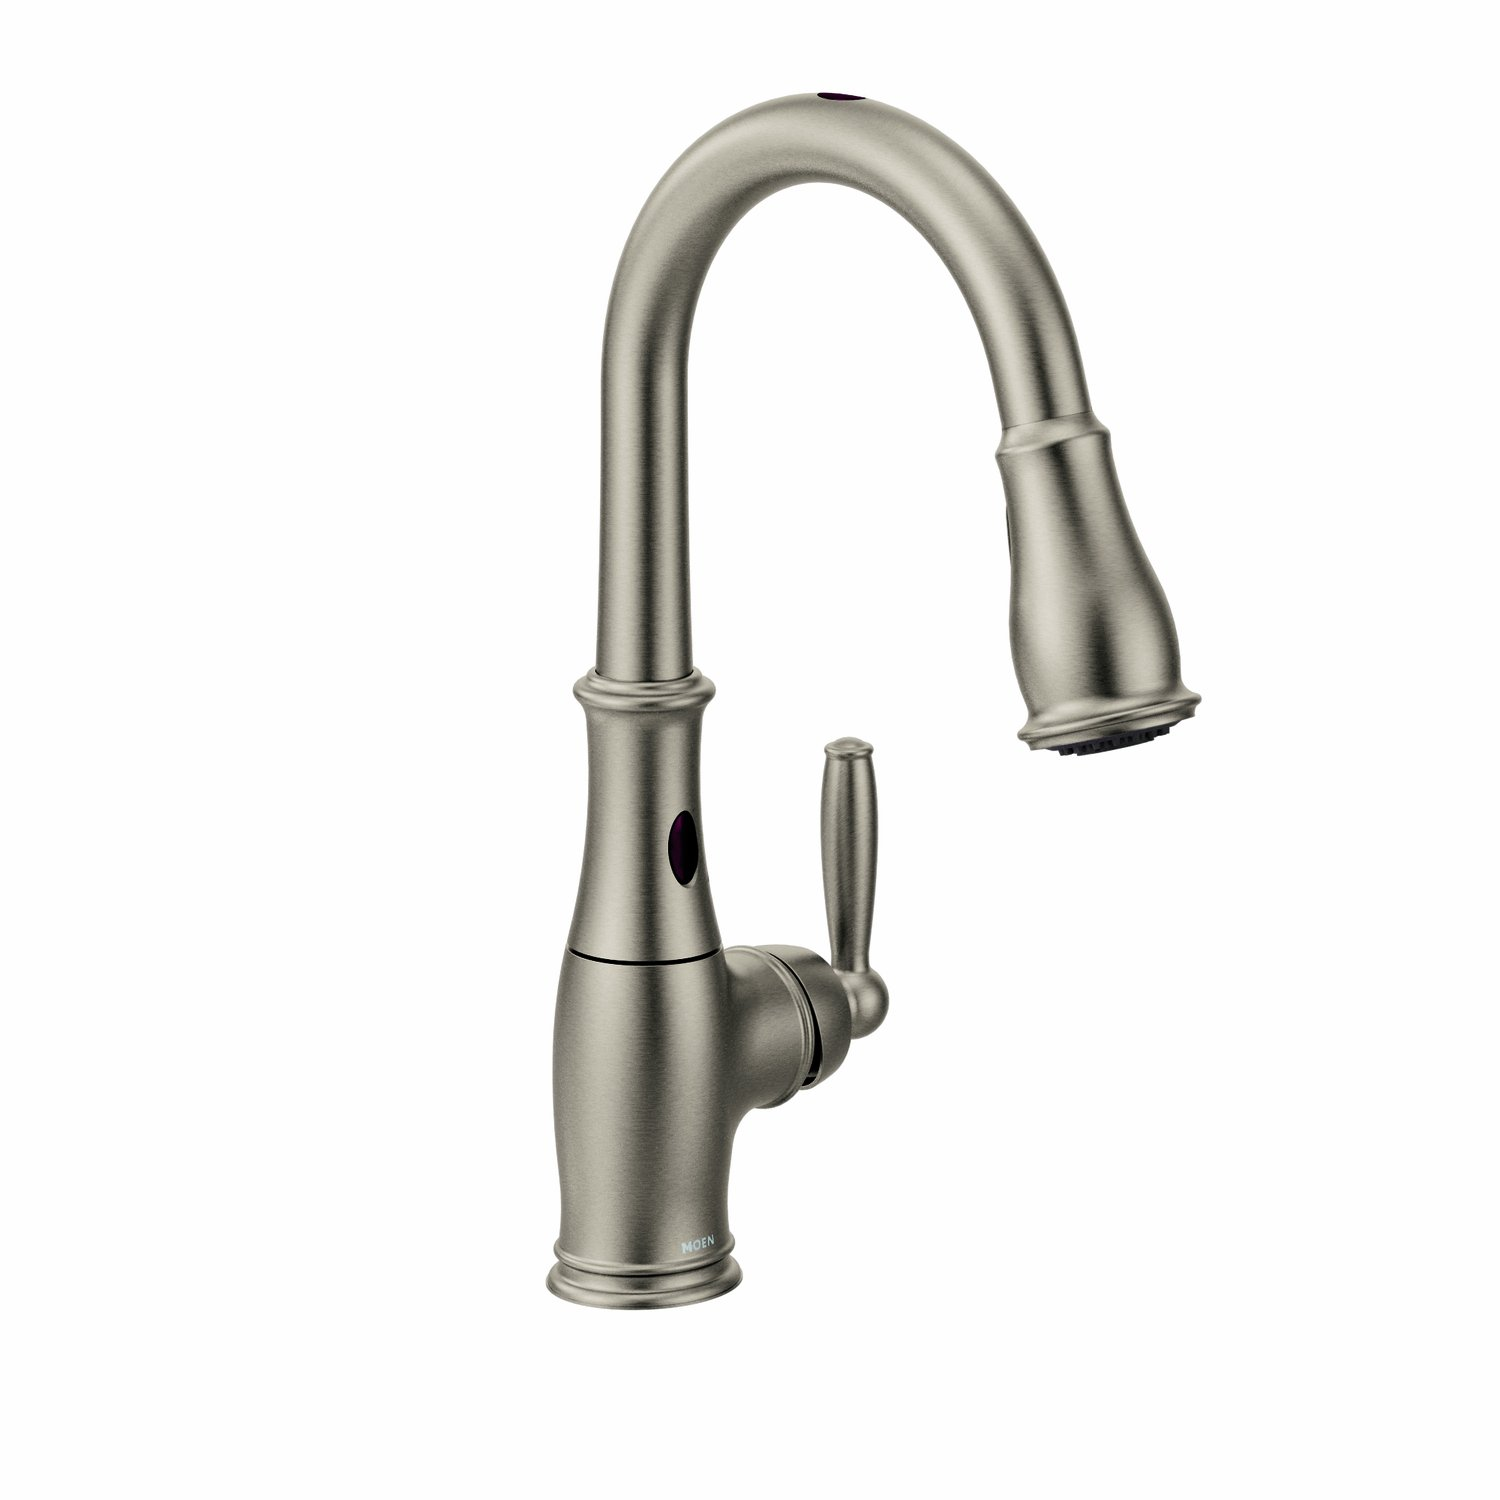 Moen Brantford Motionsense Touchless One Handle High Arc Pulldown Kitchen  Faucet Featuring Reflex, Spot Resist Stainless (7185ESRS)   Touch On Kitchen  Sink ...